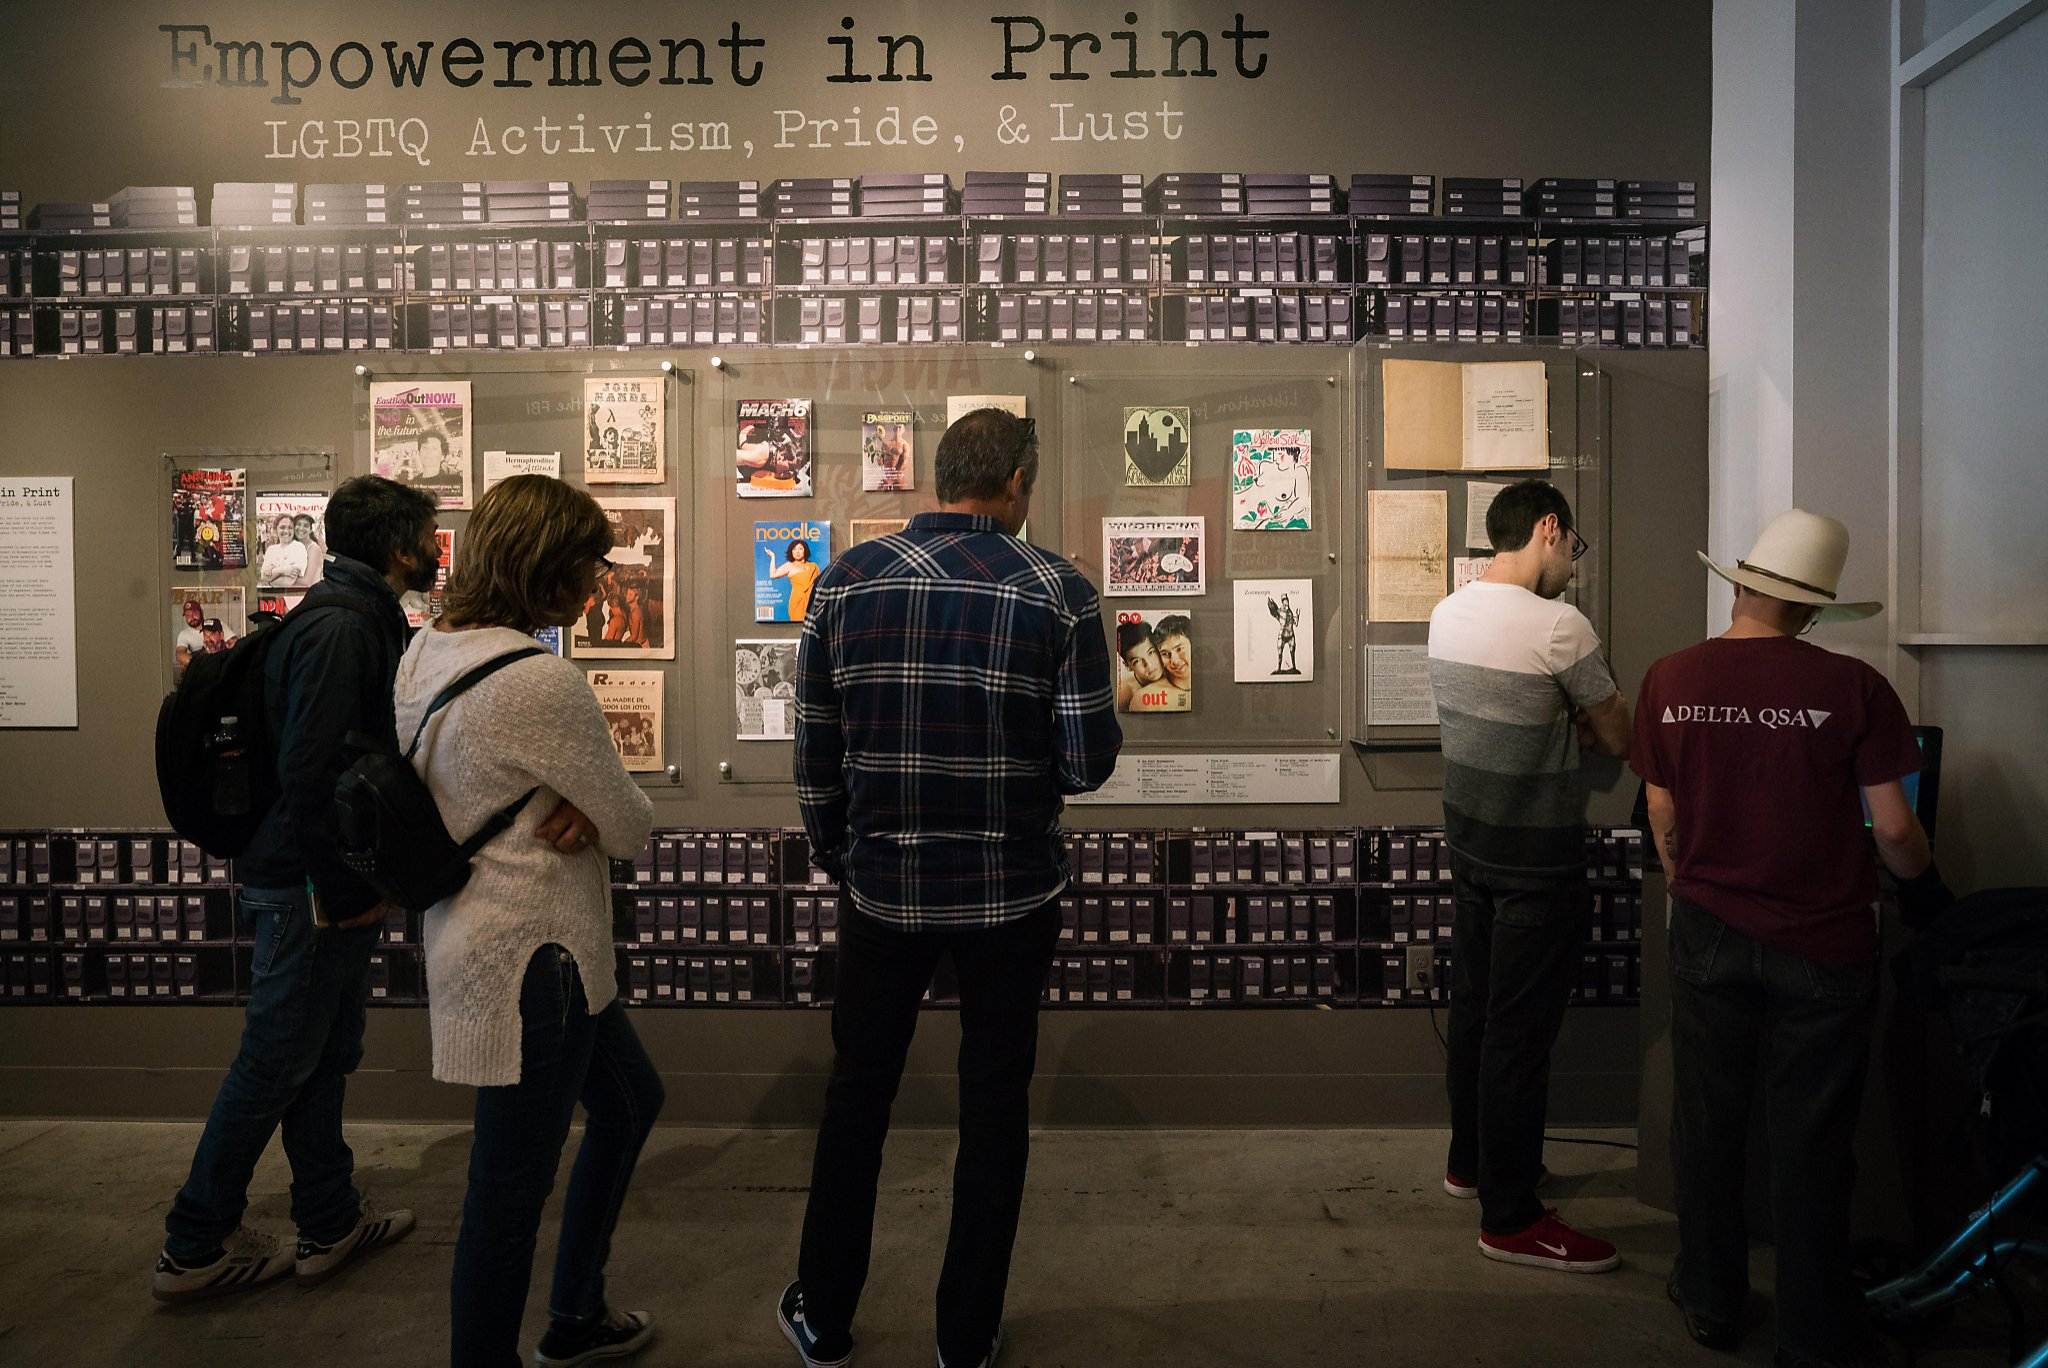 A group of people look at a display shown on a grey wall with a cityscape running along the top edge of the exhibit wall.